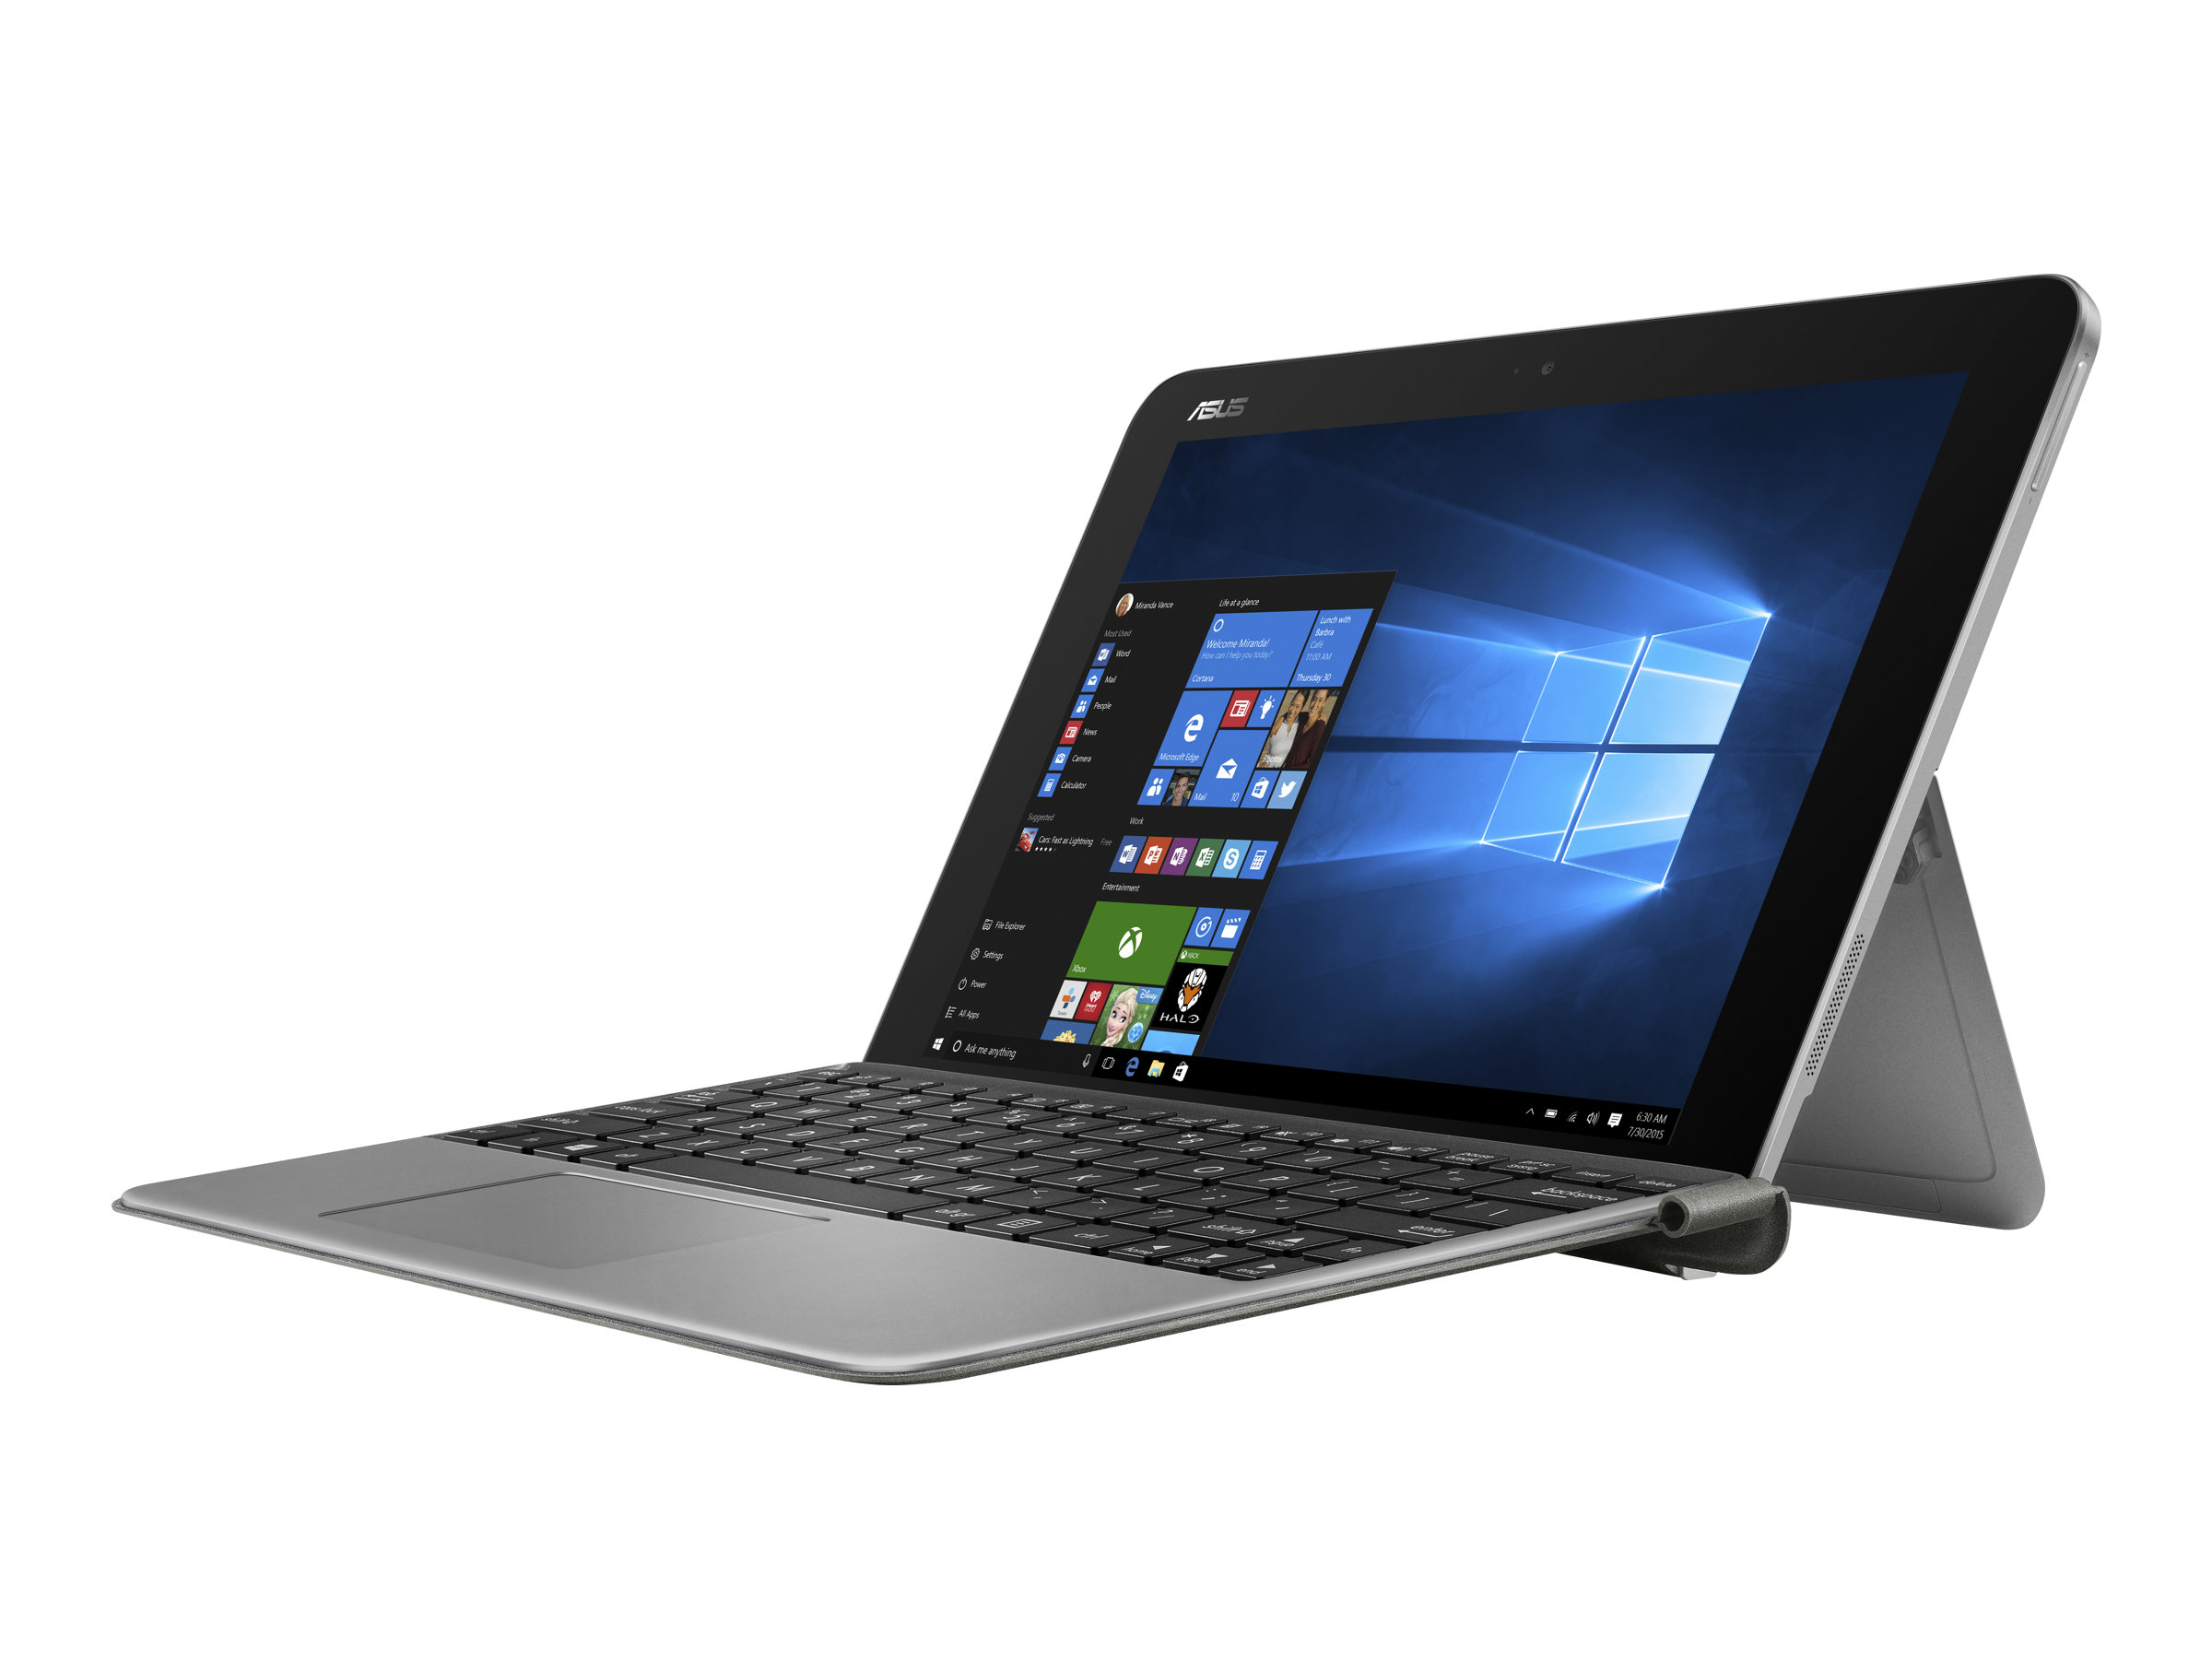 ASUS Transformer Mini T102HA GR022T - Tablet - mit Tastatur-Dock - Atom x5 Z8350 / 1.44 GHz - Win 10 Home 64-Bit - 4 GB RAM